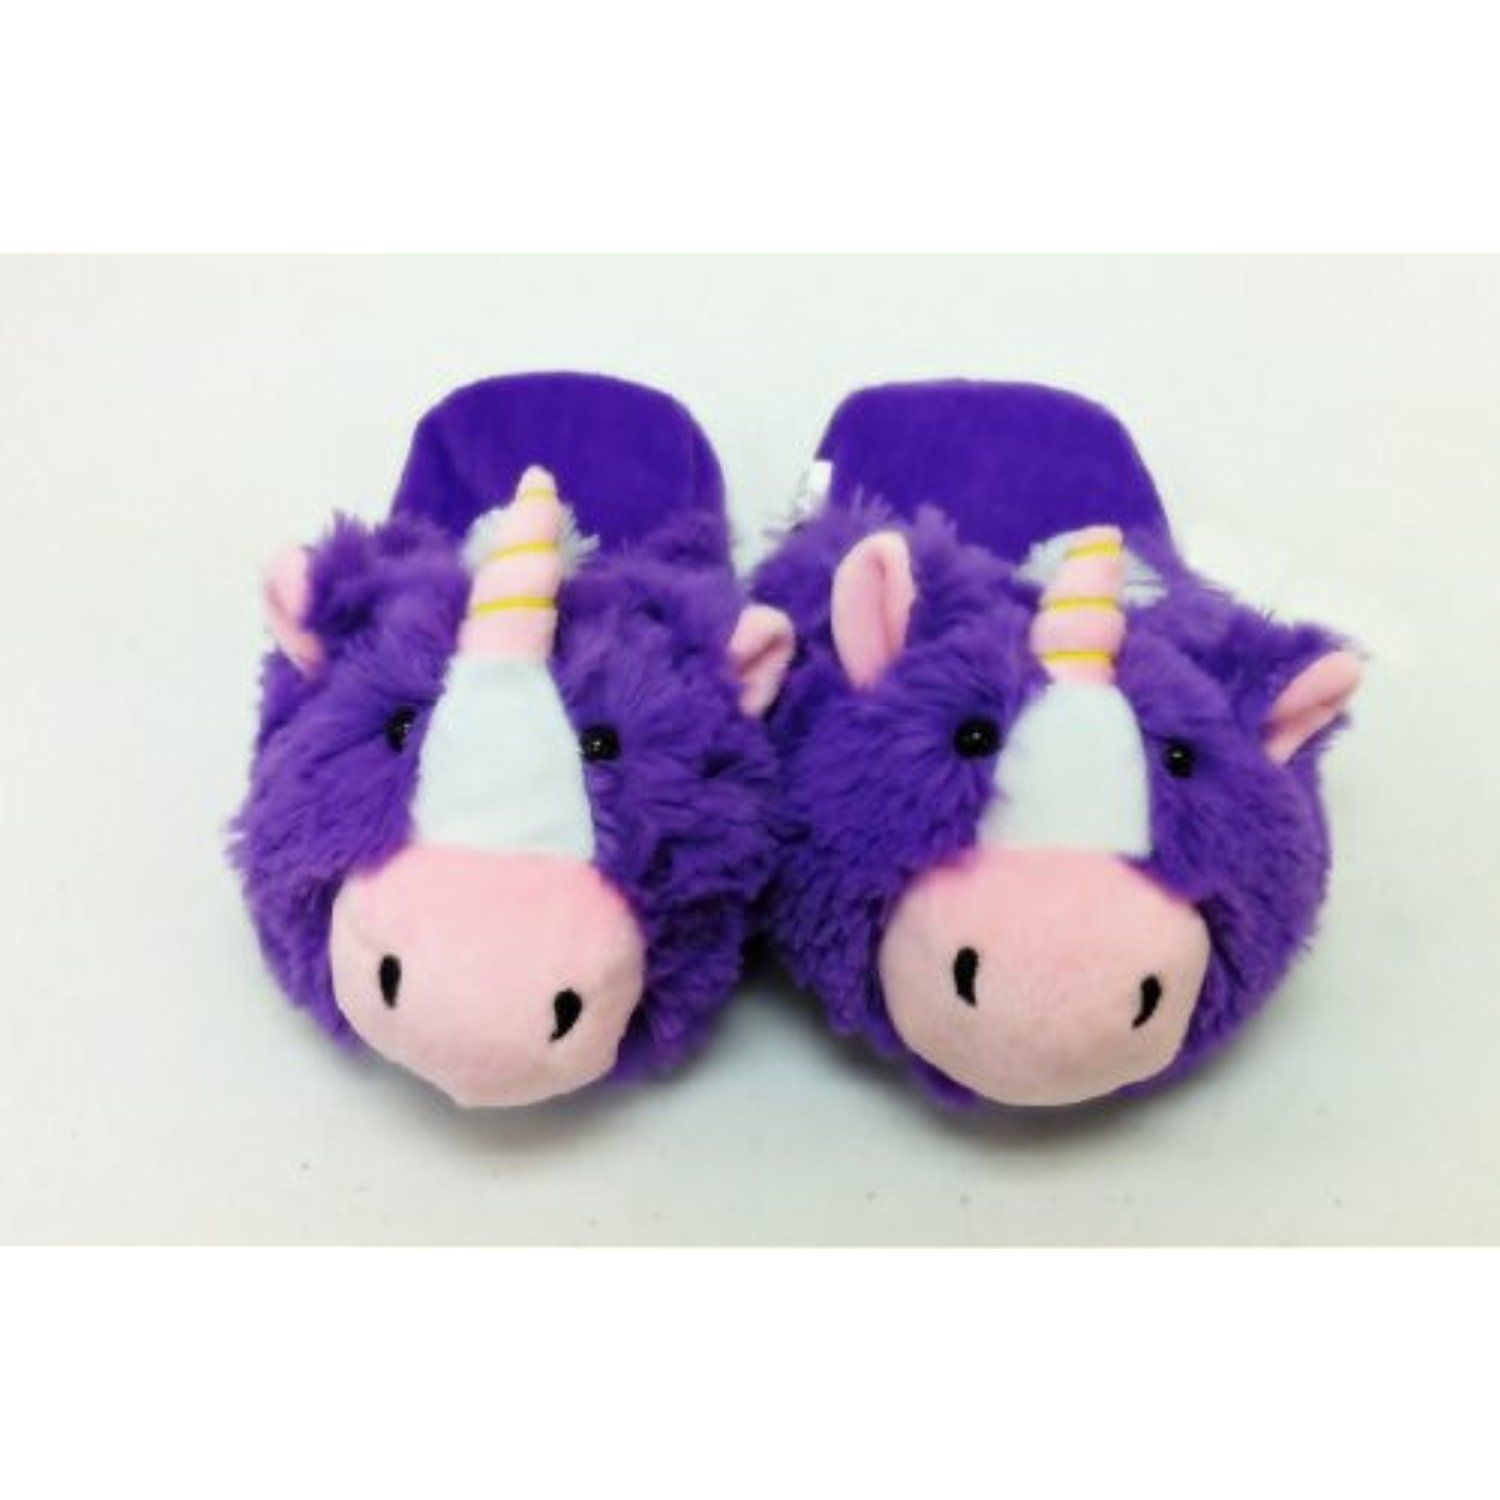 SMALL PURPLE UNICORN ANIMAL SLIPPERS PET CUSHION ANIMAL